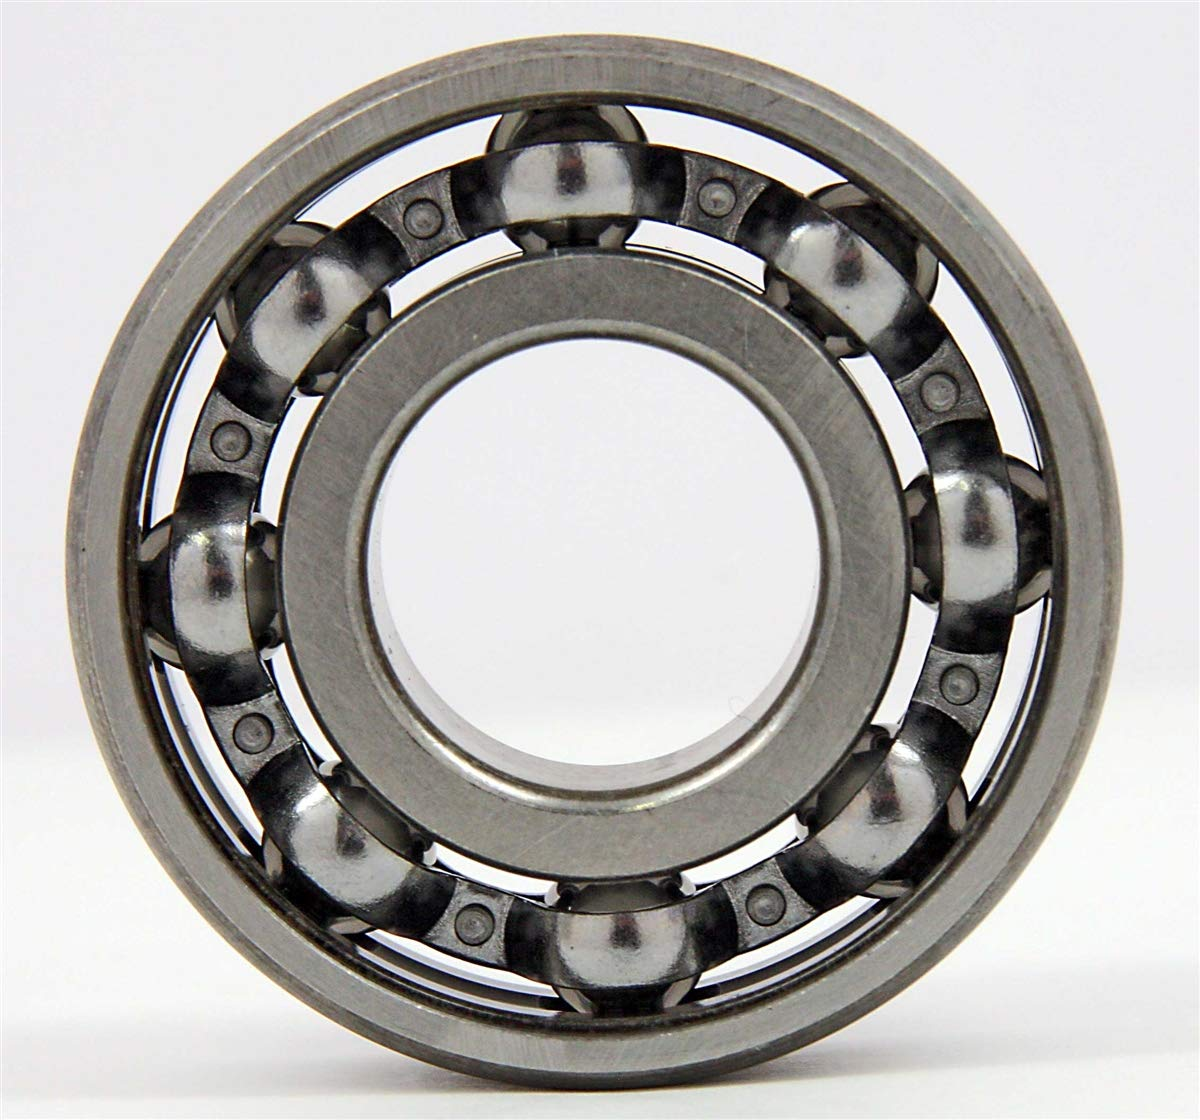 Open Material Chrome Steel Deep Groove Ball Bearing Closures VXB Brand R8 Open Miniature Bearing 1//2x1 1//8x1//4 inch Type